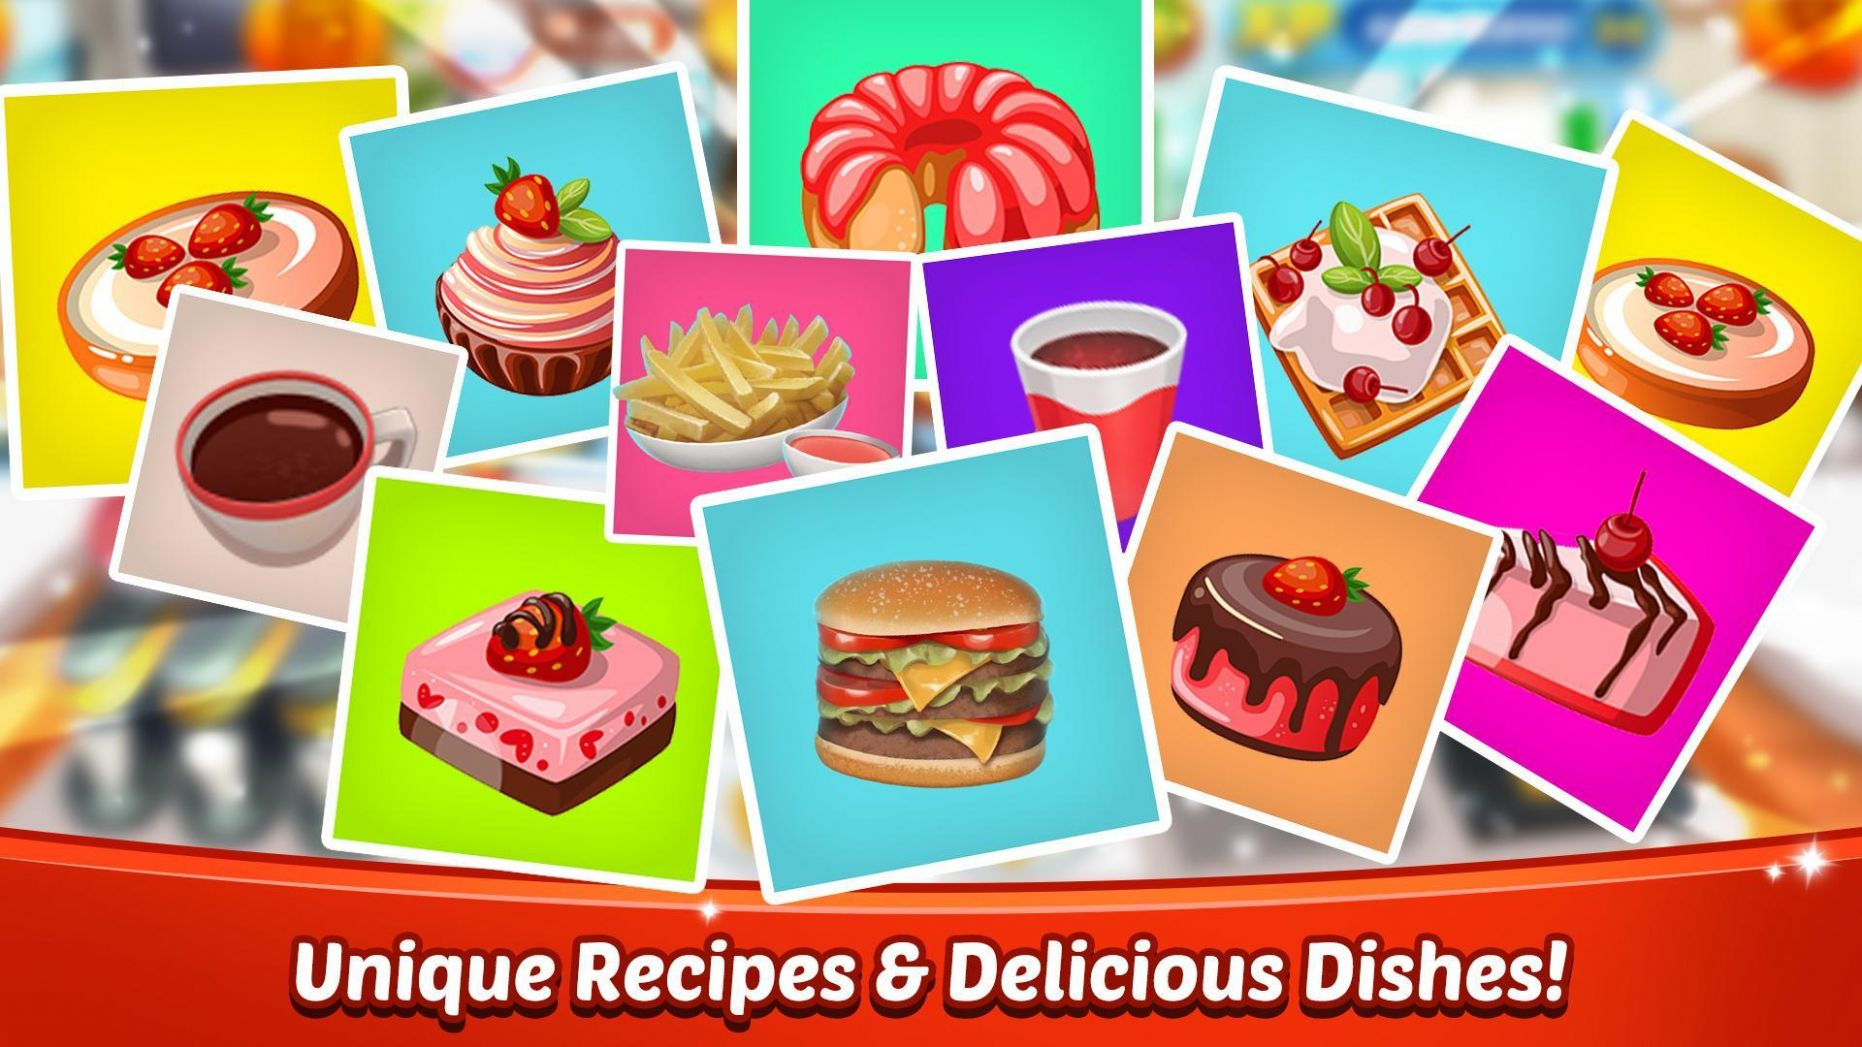 Cooking World für Android - APK herunterladen - Cooking Recipes Games Free Download